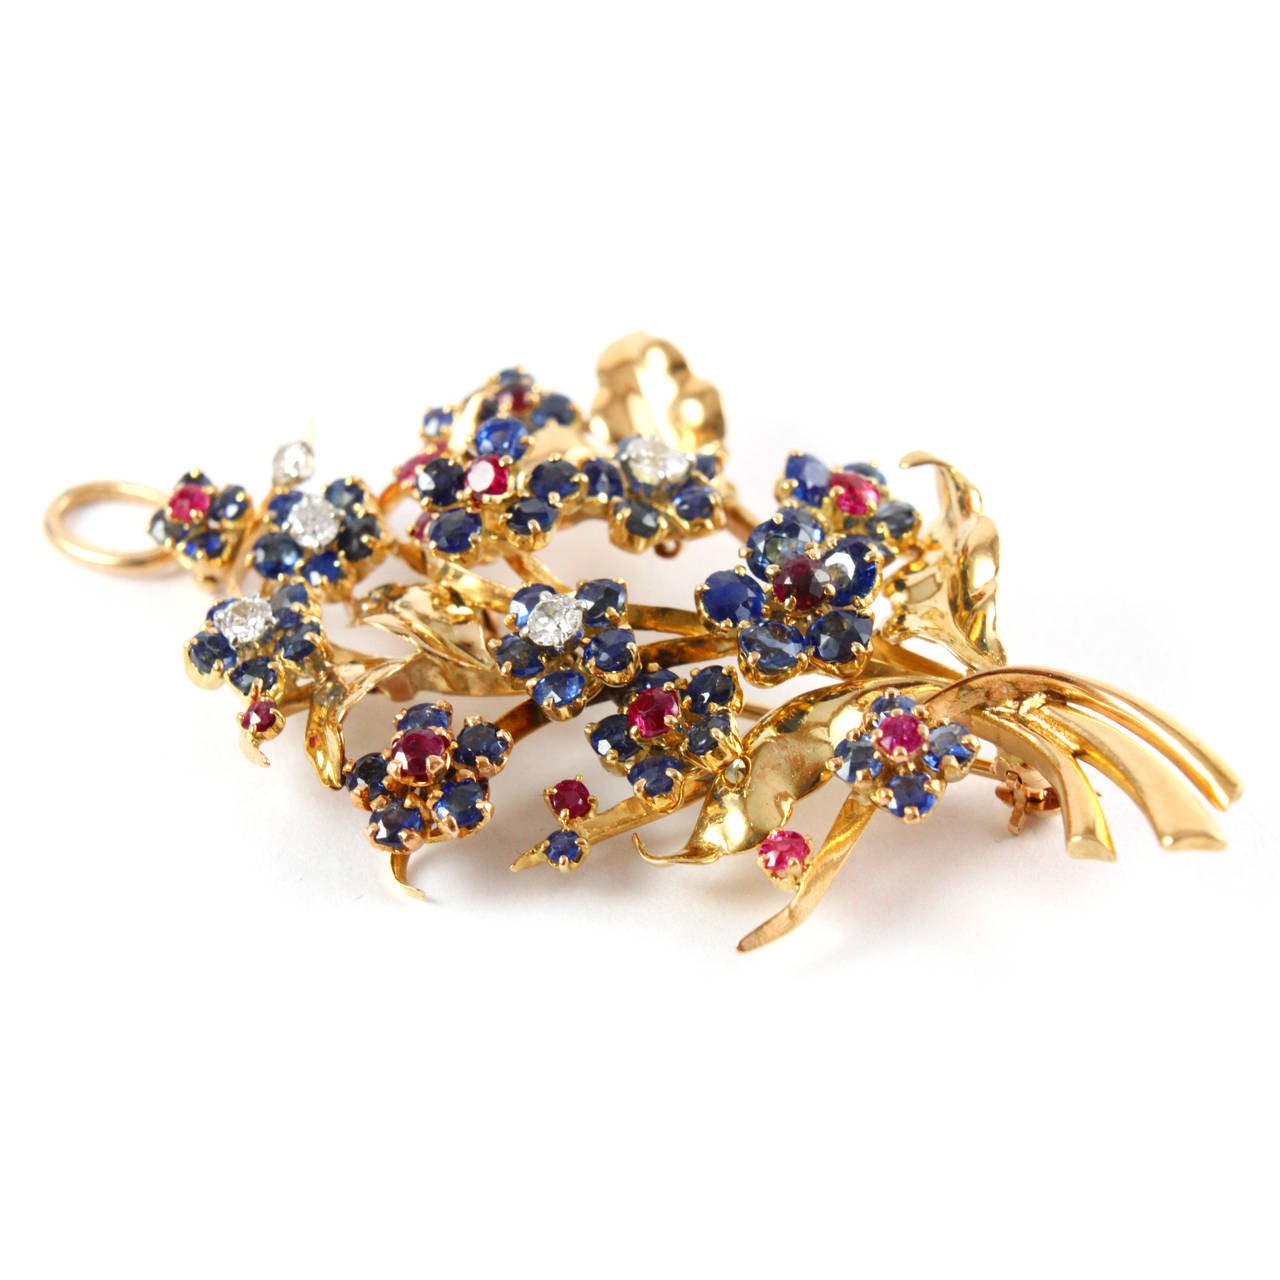 A charming flower brooch/pendant by Mauboussin.  Composed with rubies, sapphires and diamond solitaires and made in 18k yellow gold. The jewel has a pendant hook as well as a brooch pin.  Signed Mauboussin Paris, numbered, with French